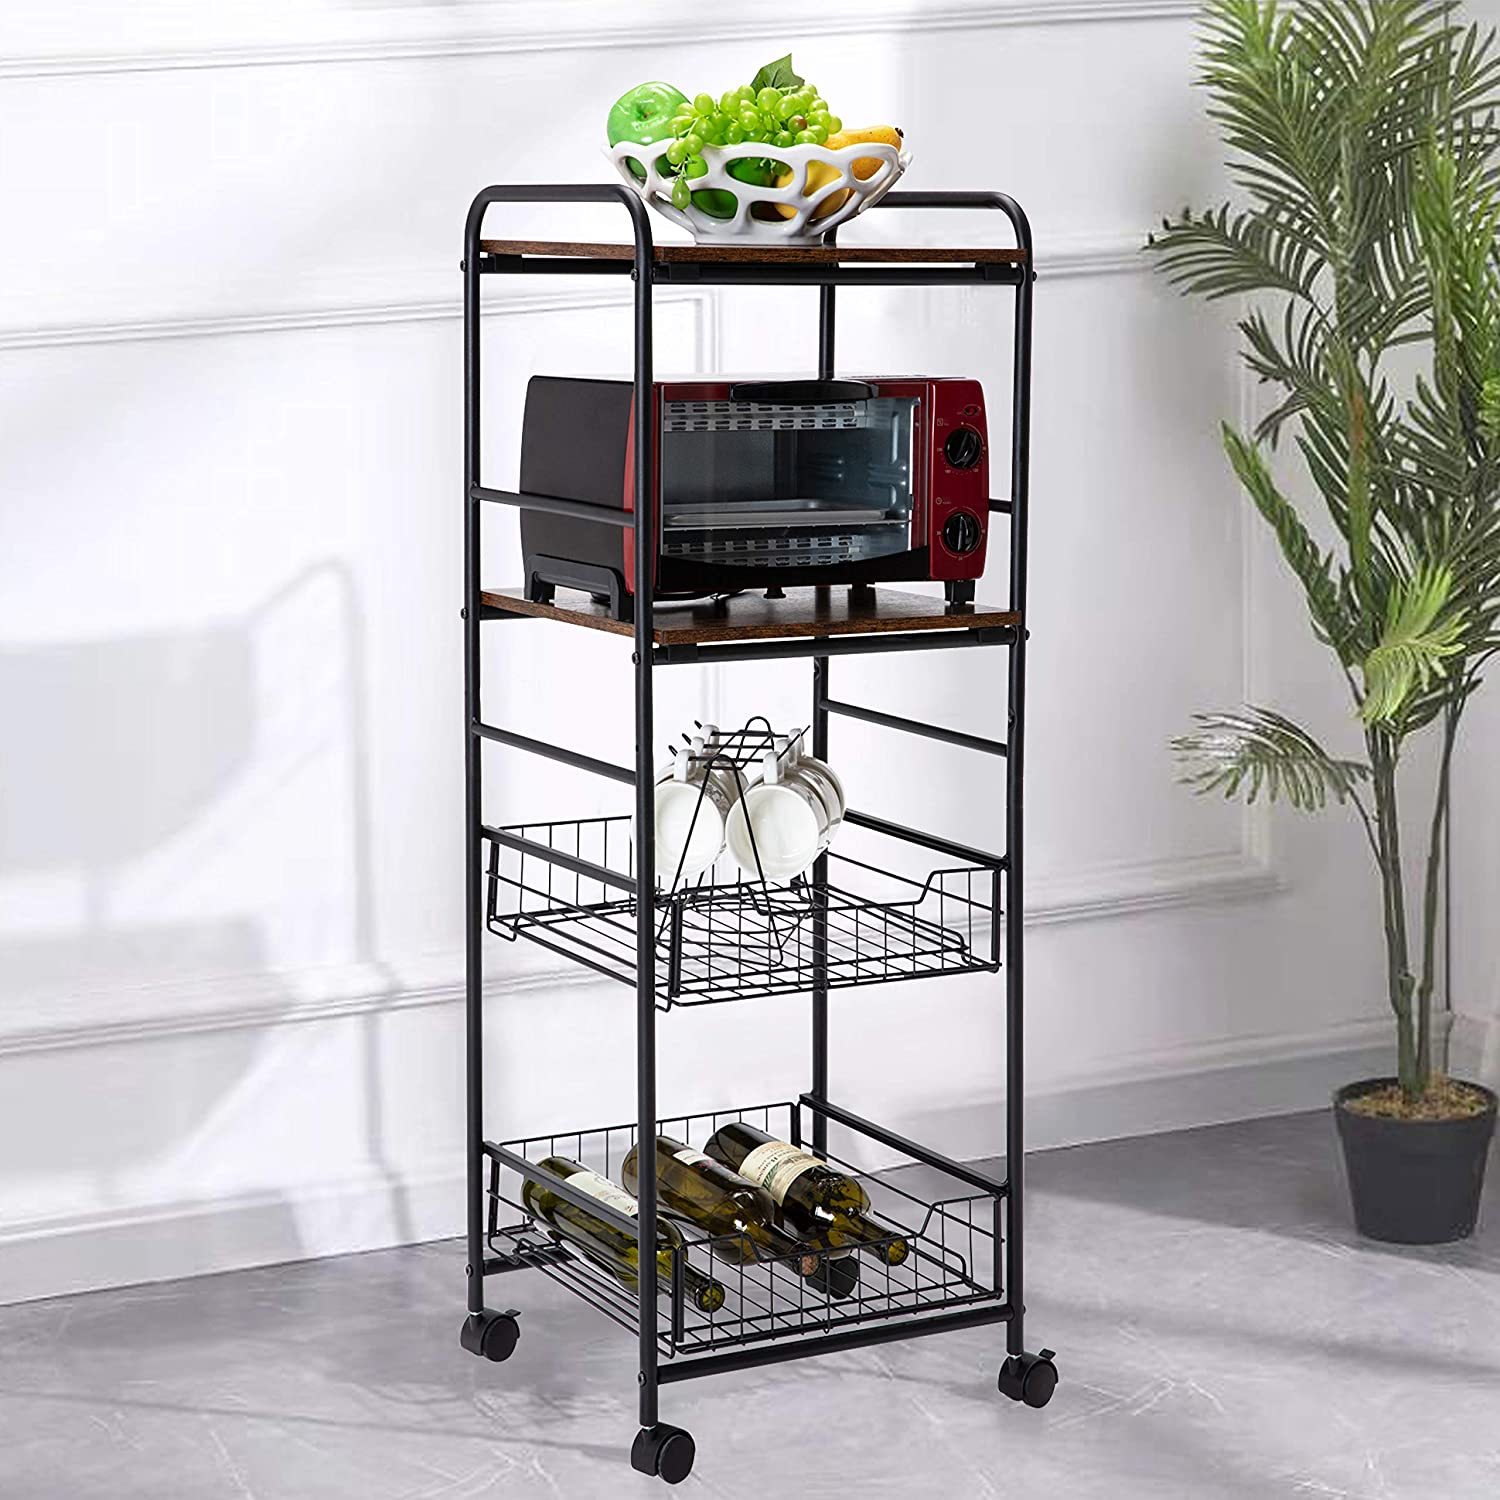 4-Tier Rolling Kitchen Cart, Utility Serving Cart Trolley, Microwave Stand Storage on Wheels with Wire Baskets